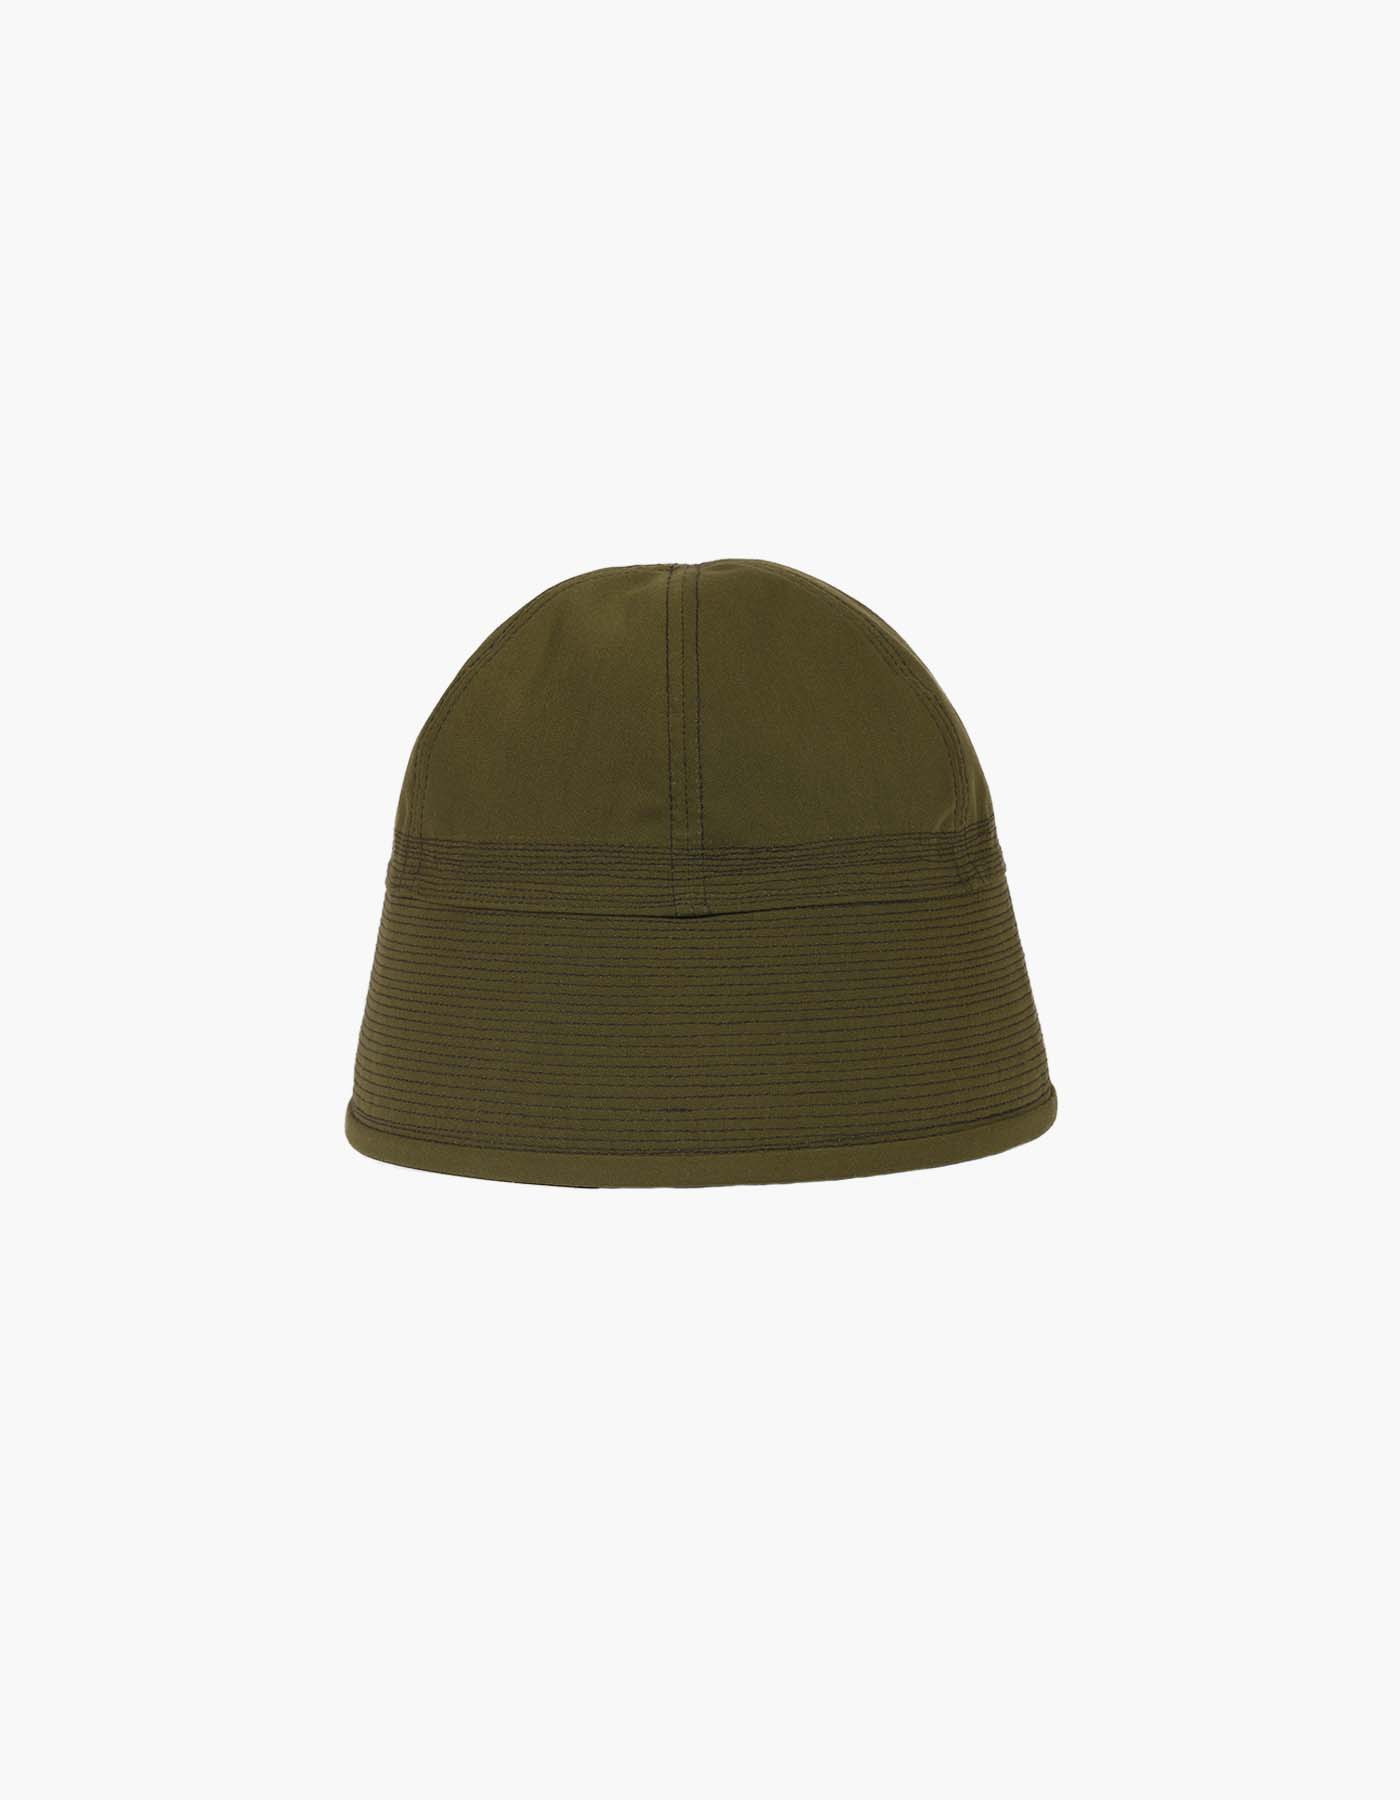 NYLON SAILOR HAT / KHAKI